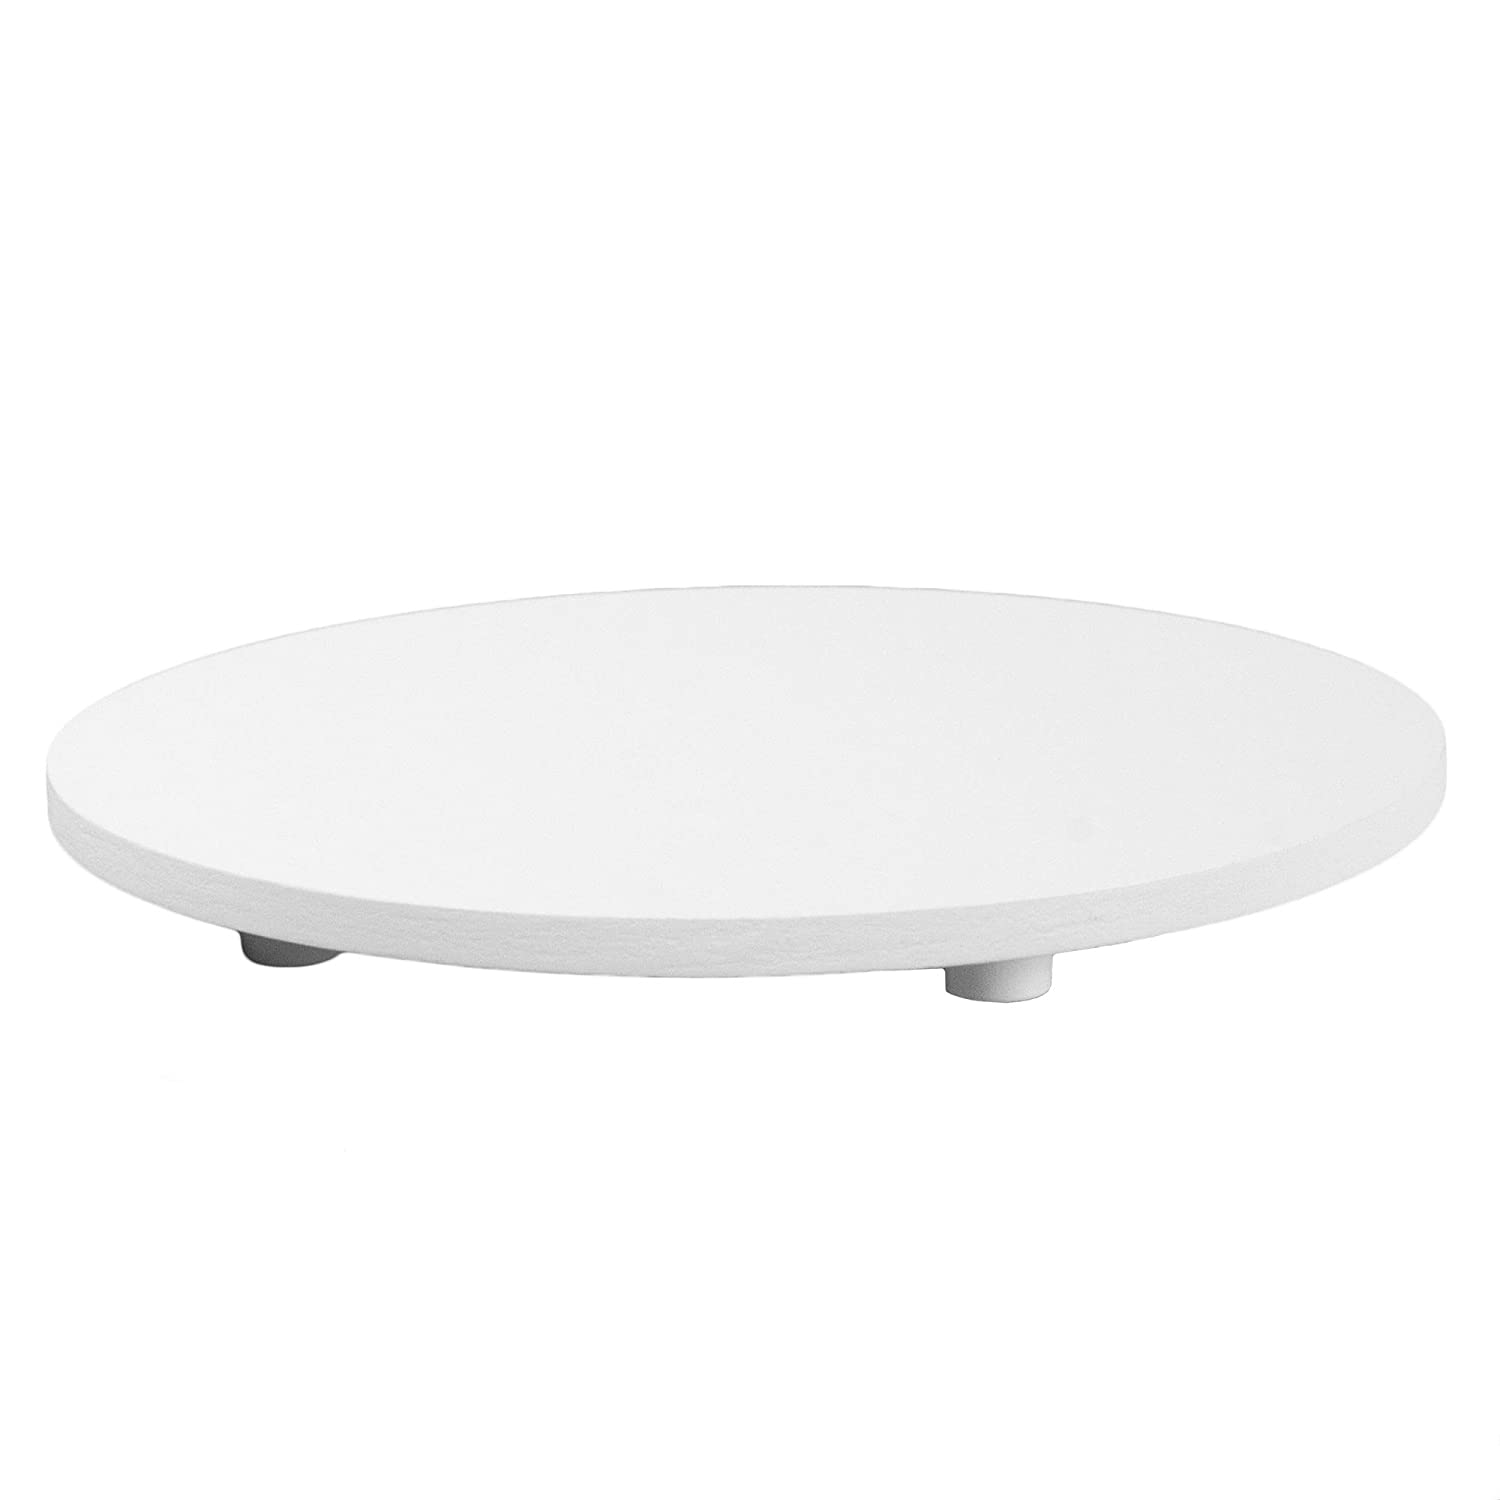 Display Cake Board Footed Round 30 cm (11.8 Inch)